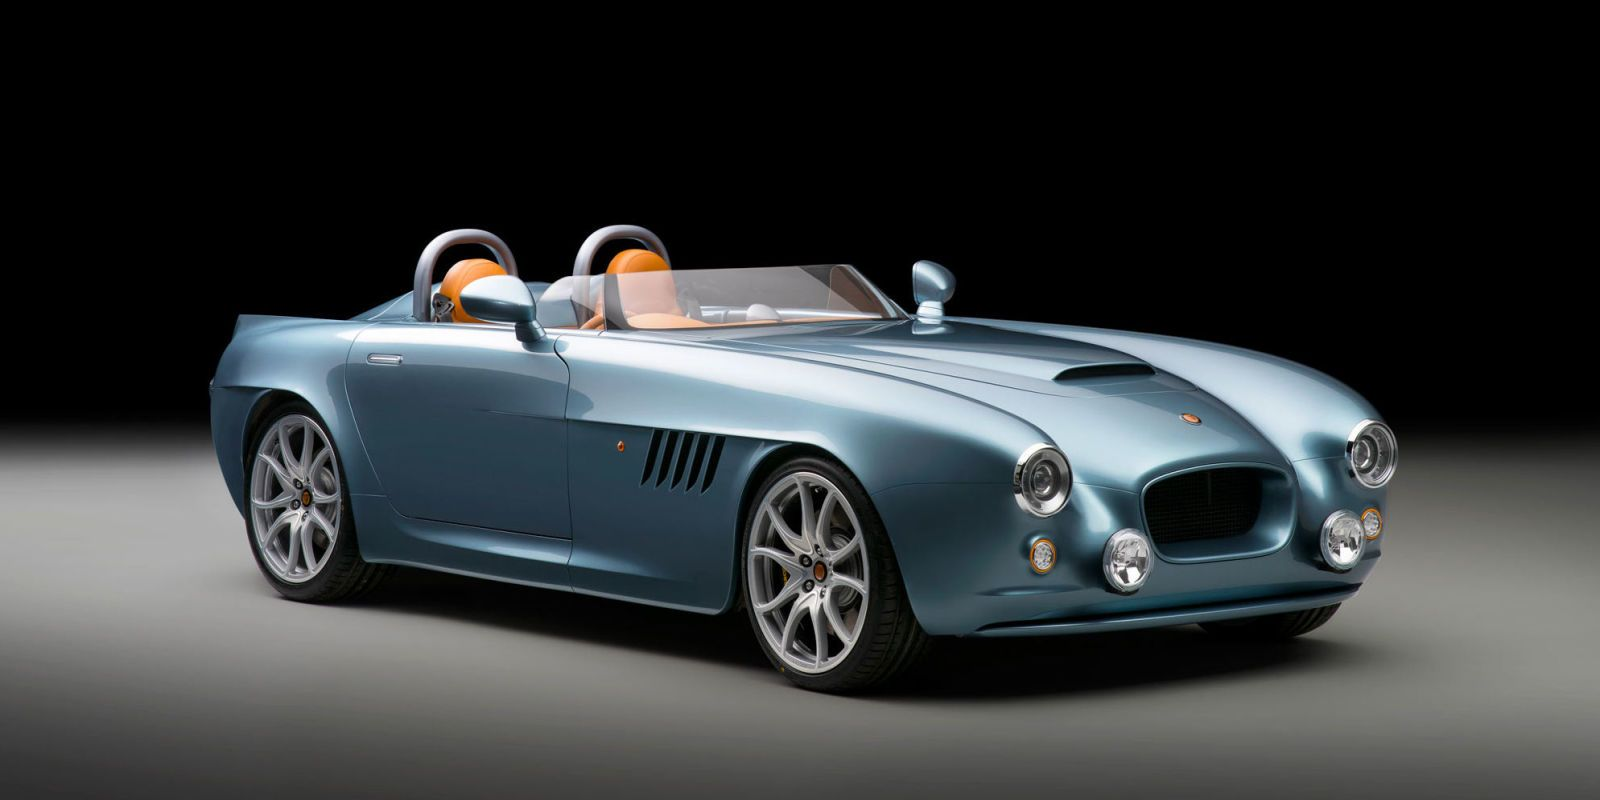 The Bristol Bullet Is the New Shelby Cobra